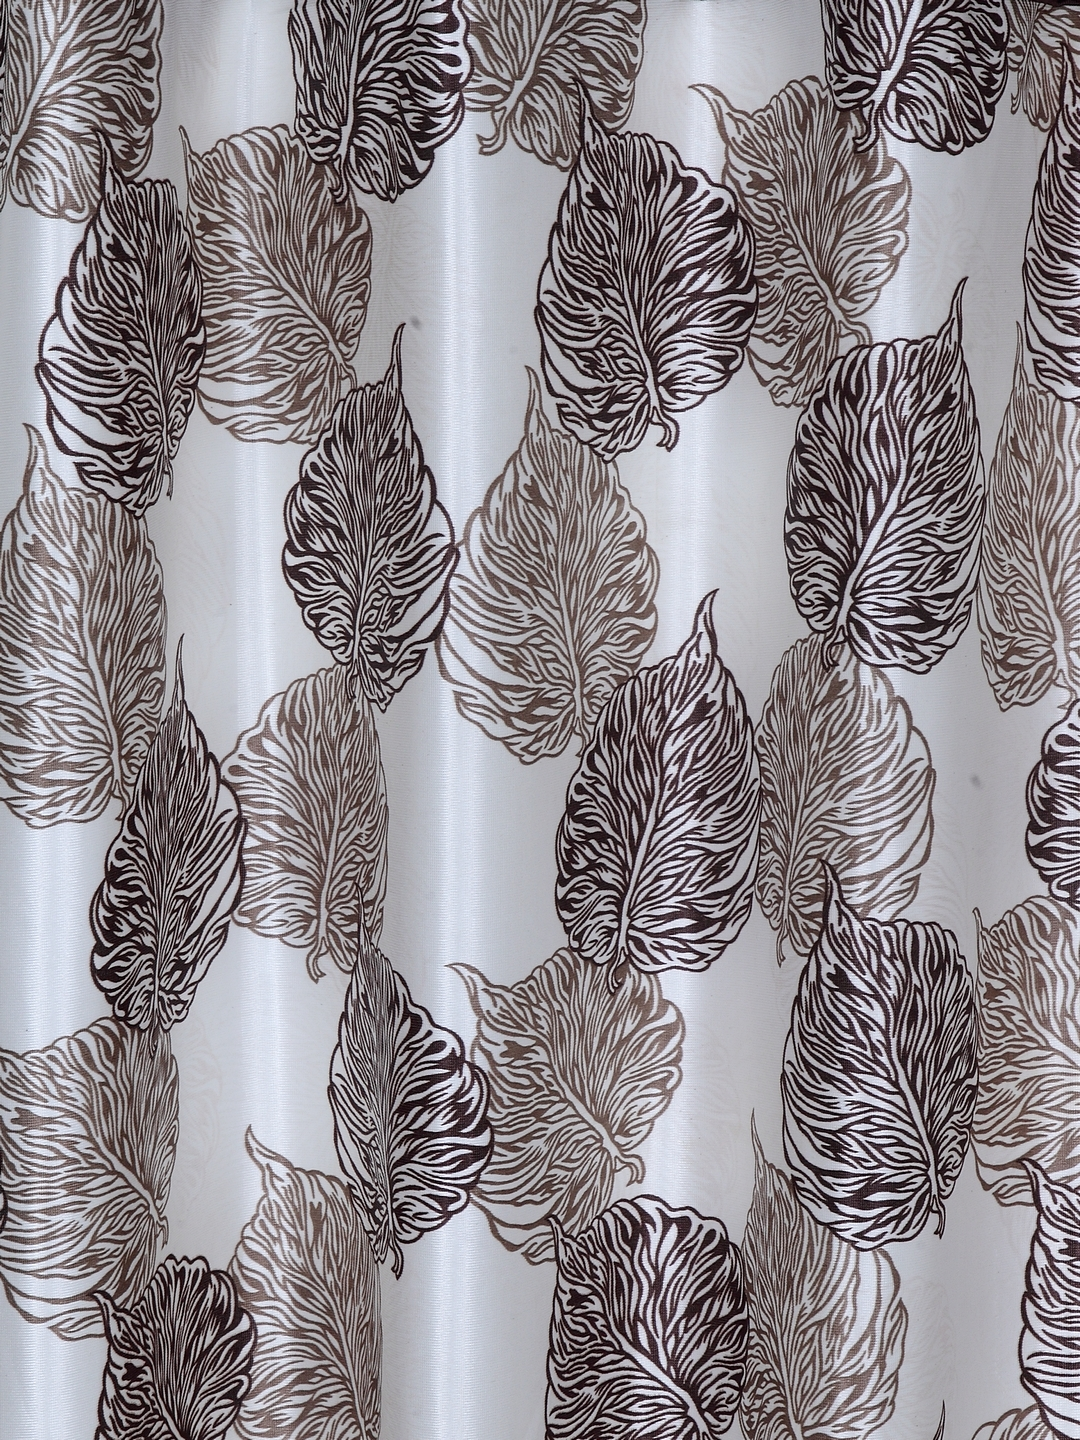 Polyester Plain Printed Window Curtains for Bedroom, Kitchen, Kids or Living Room-034_Set of 2